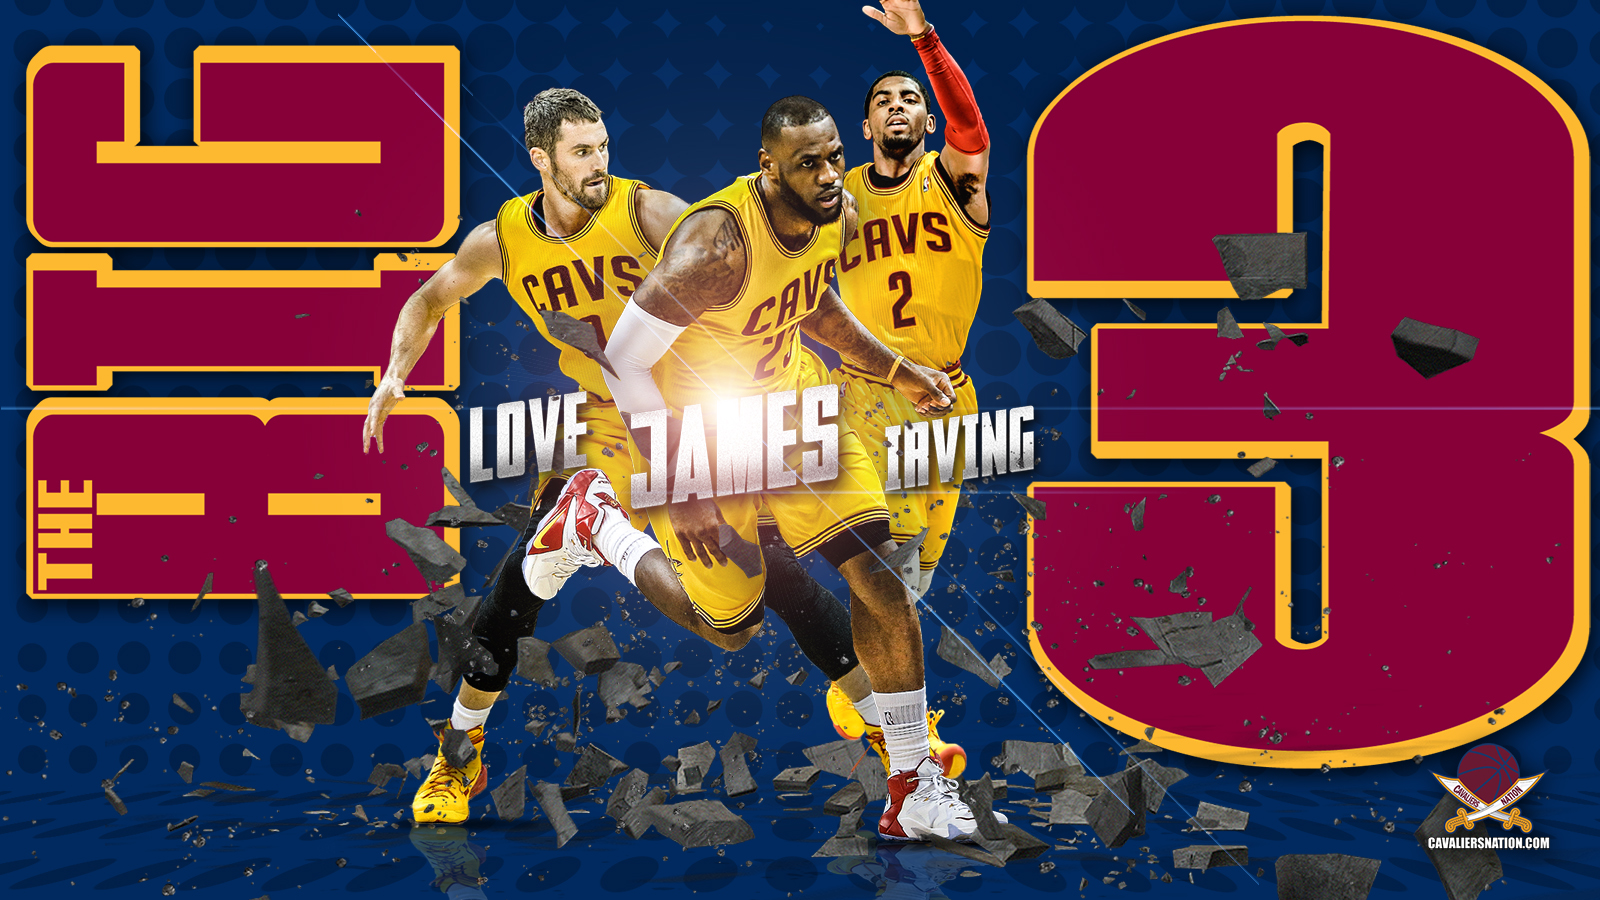 Cavs Game Hd